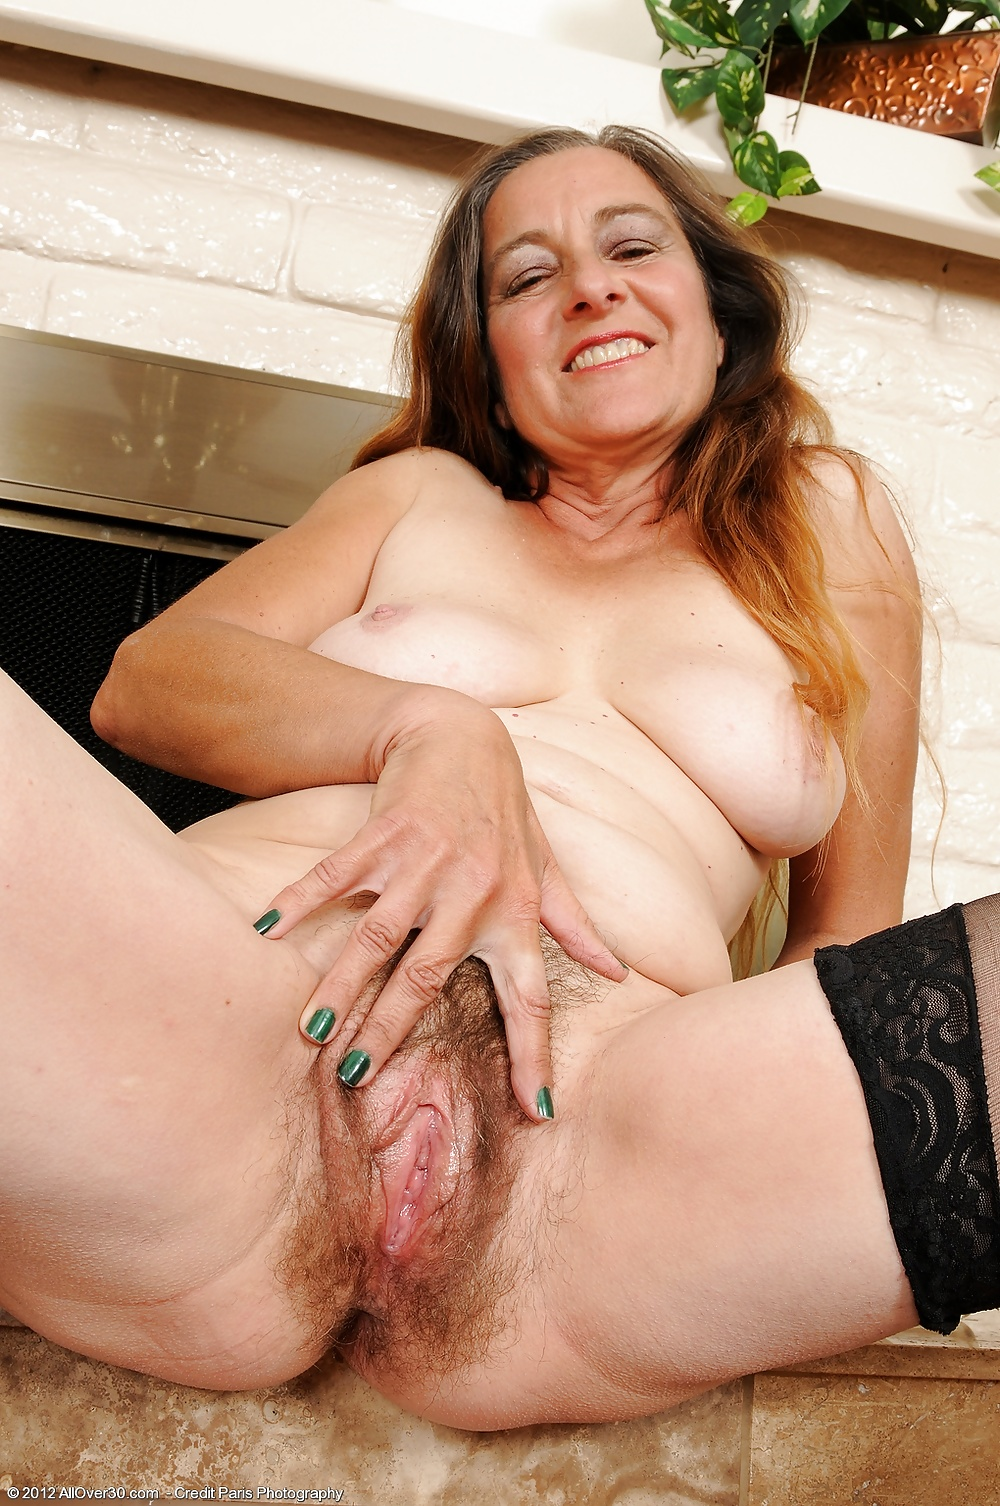 Delicious big tits and bald pussy of sexy mature woman